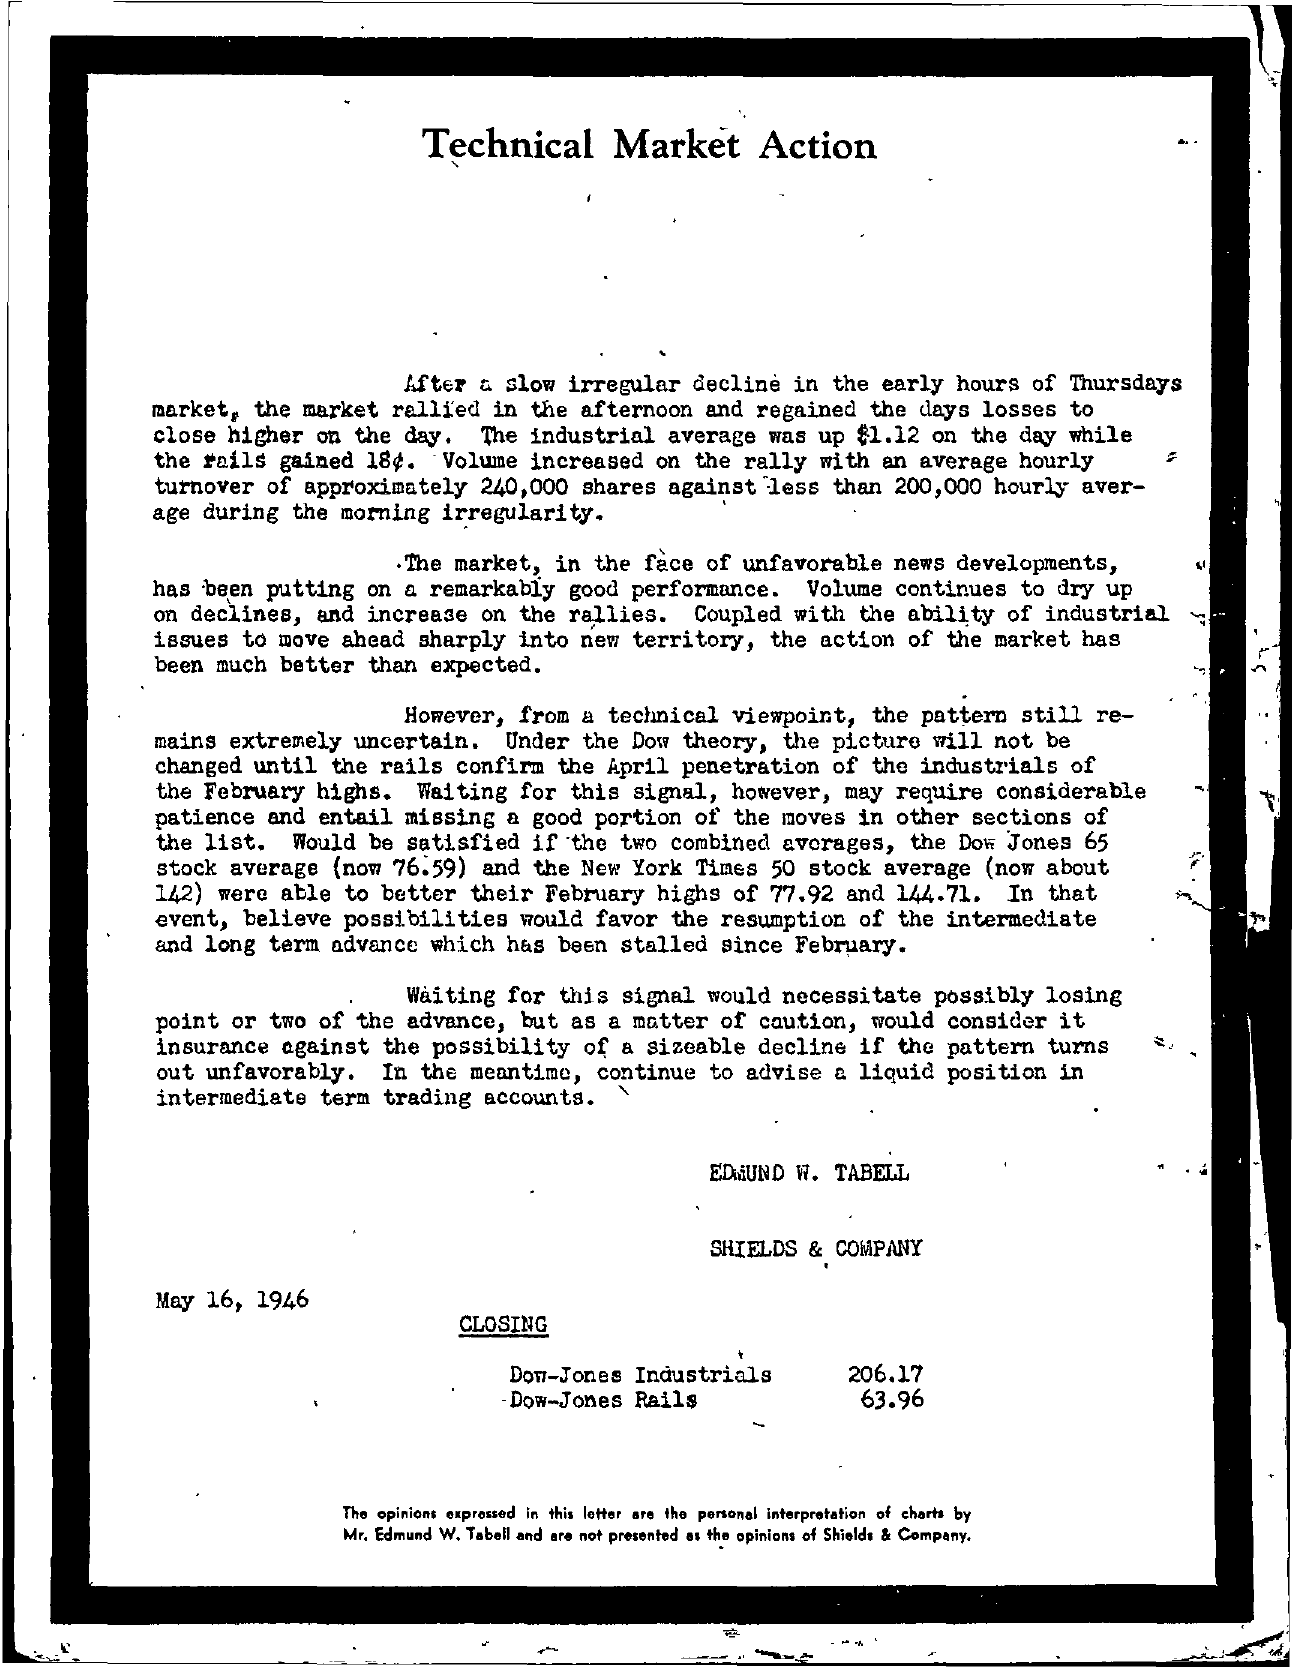 Tabell's Market Letter - May 16, 1946